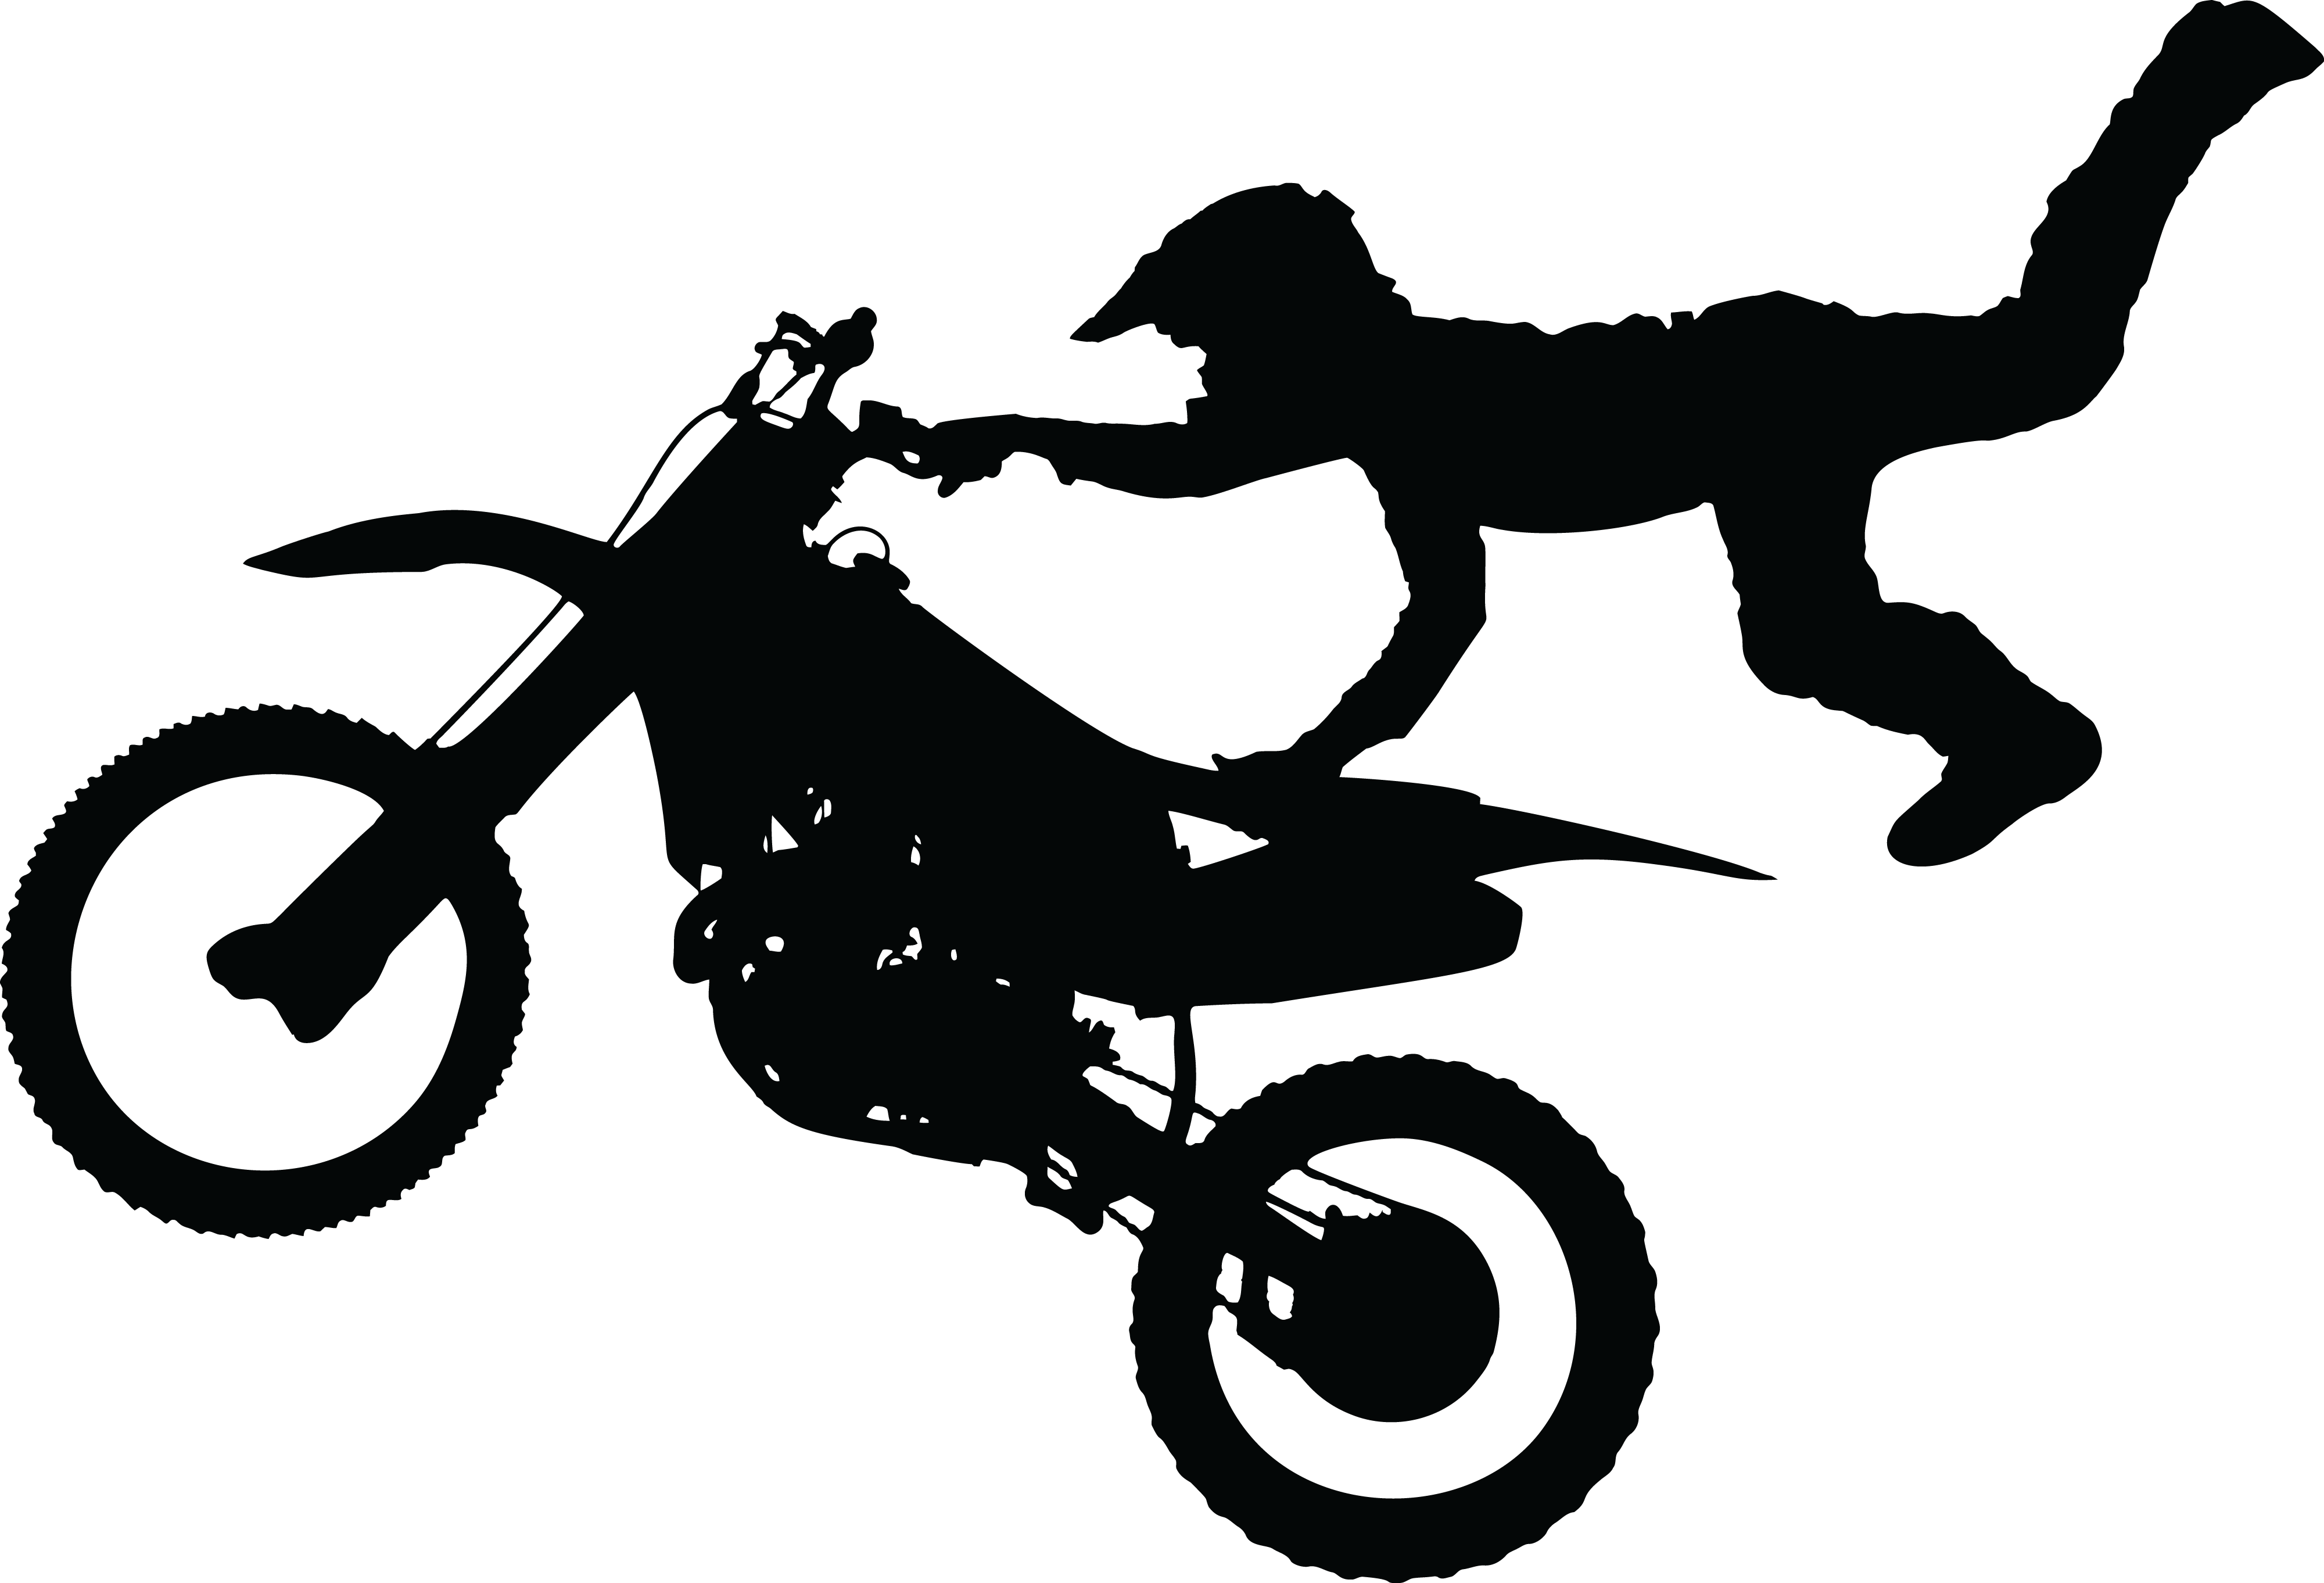 Dirt bike png free. Motorcycle clipart biker